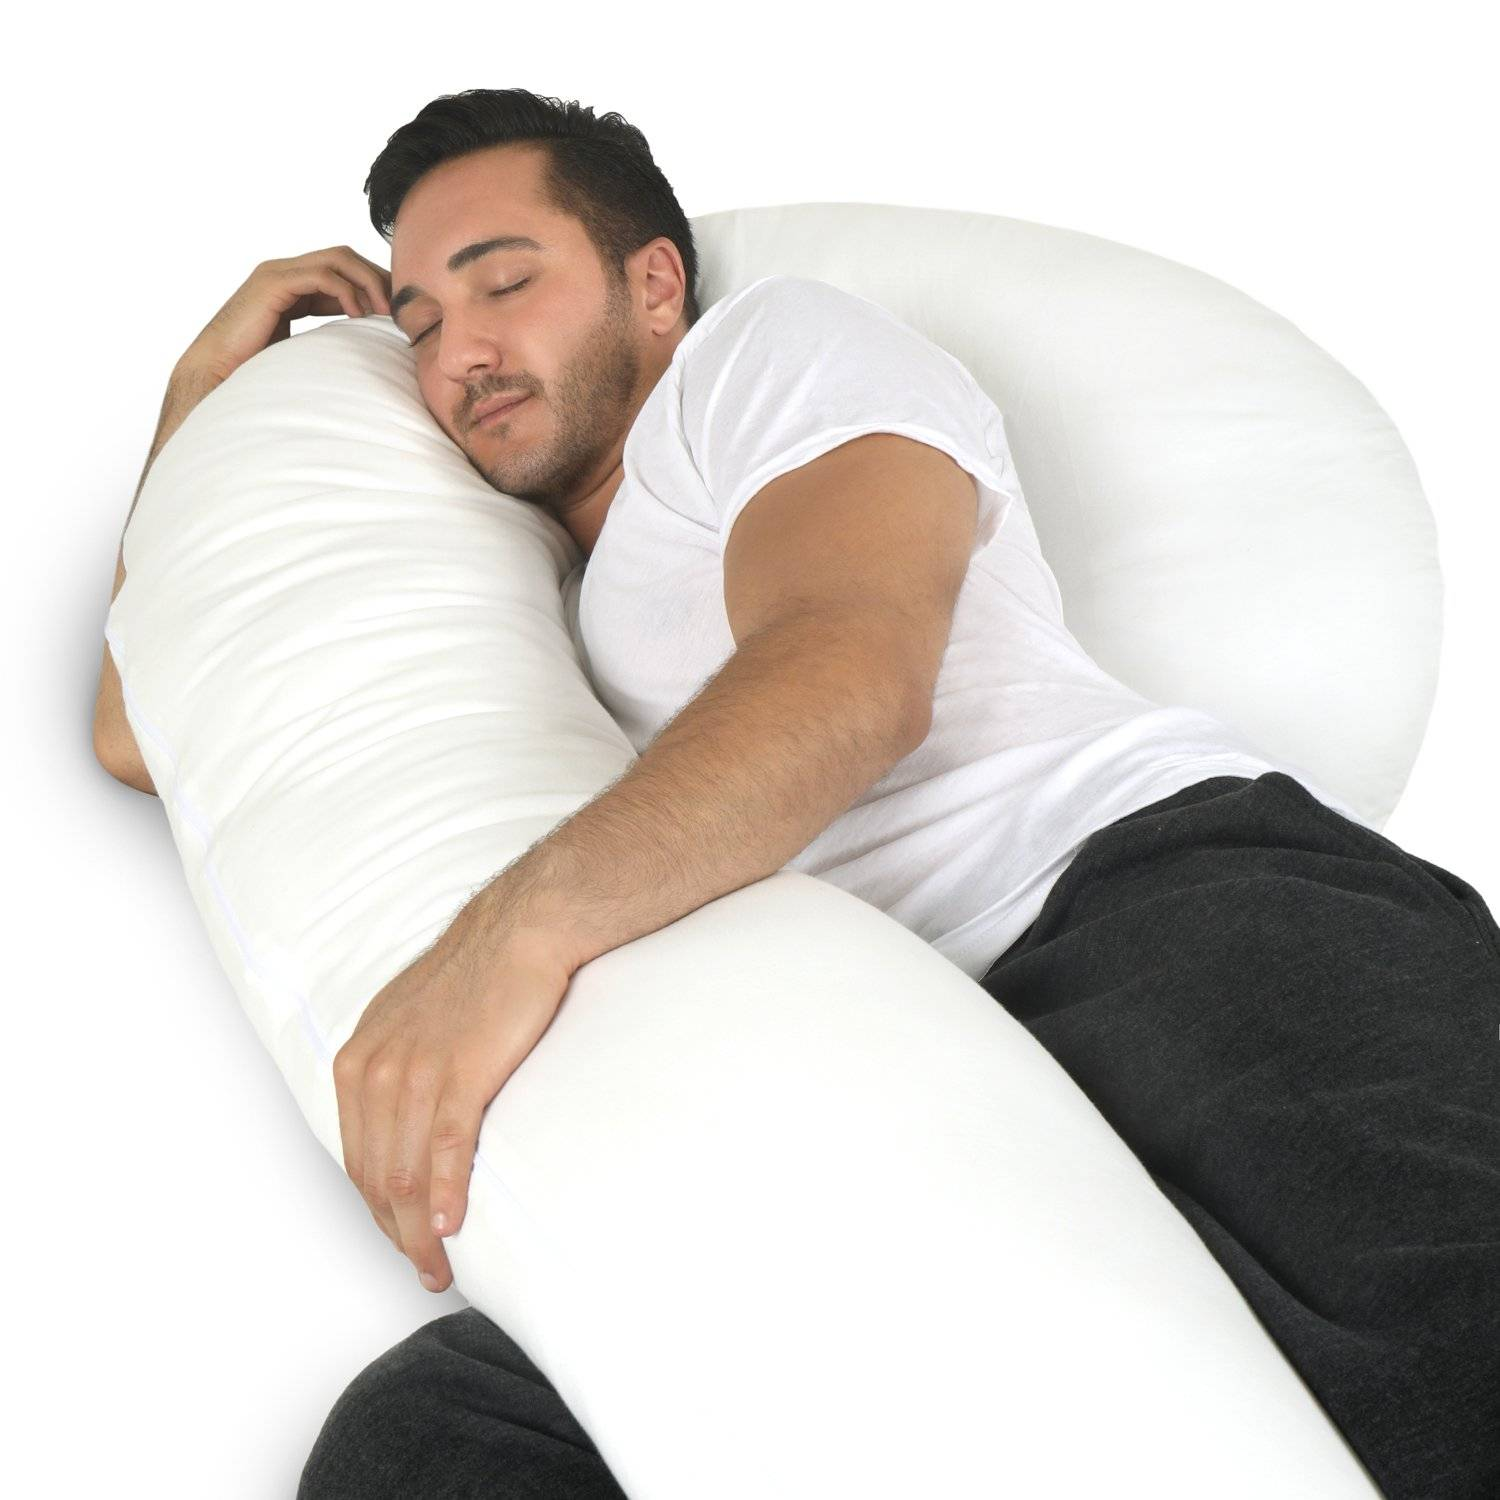 man sleeping with u-shaped body pillow